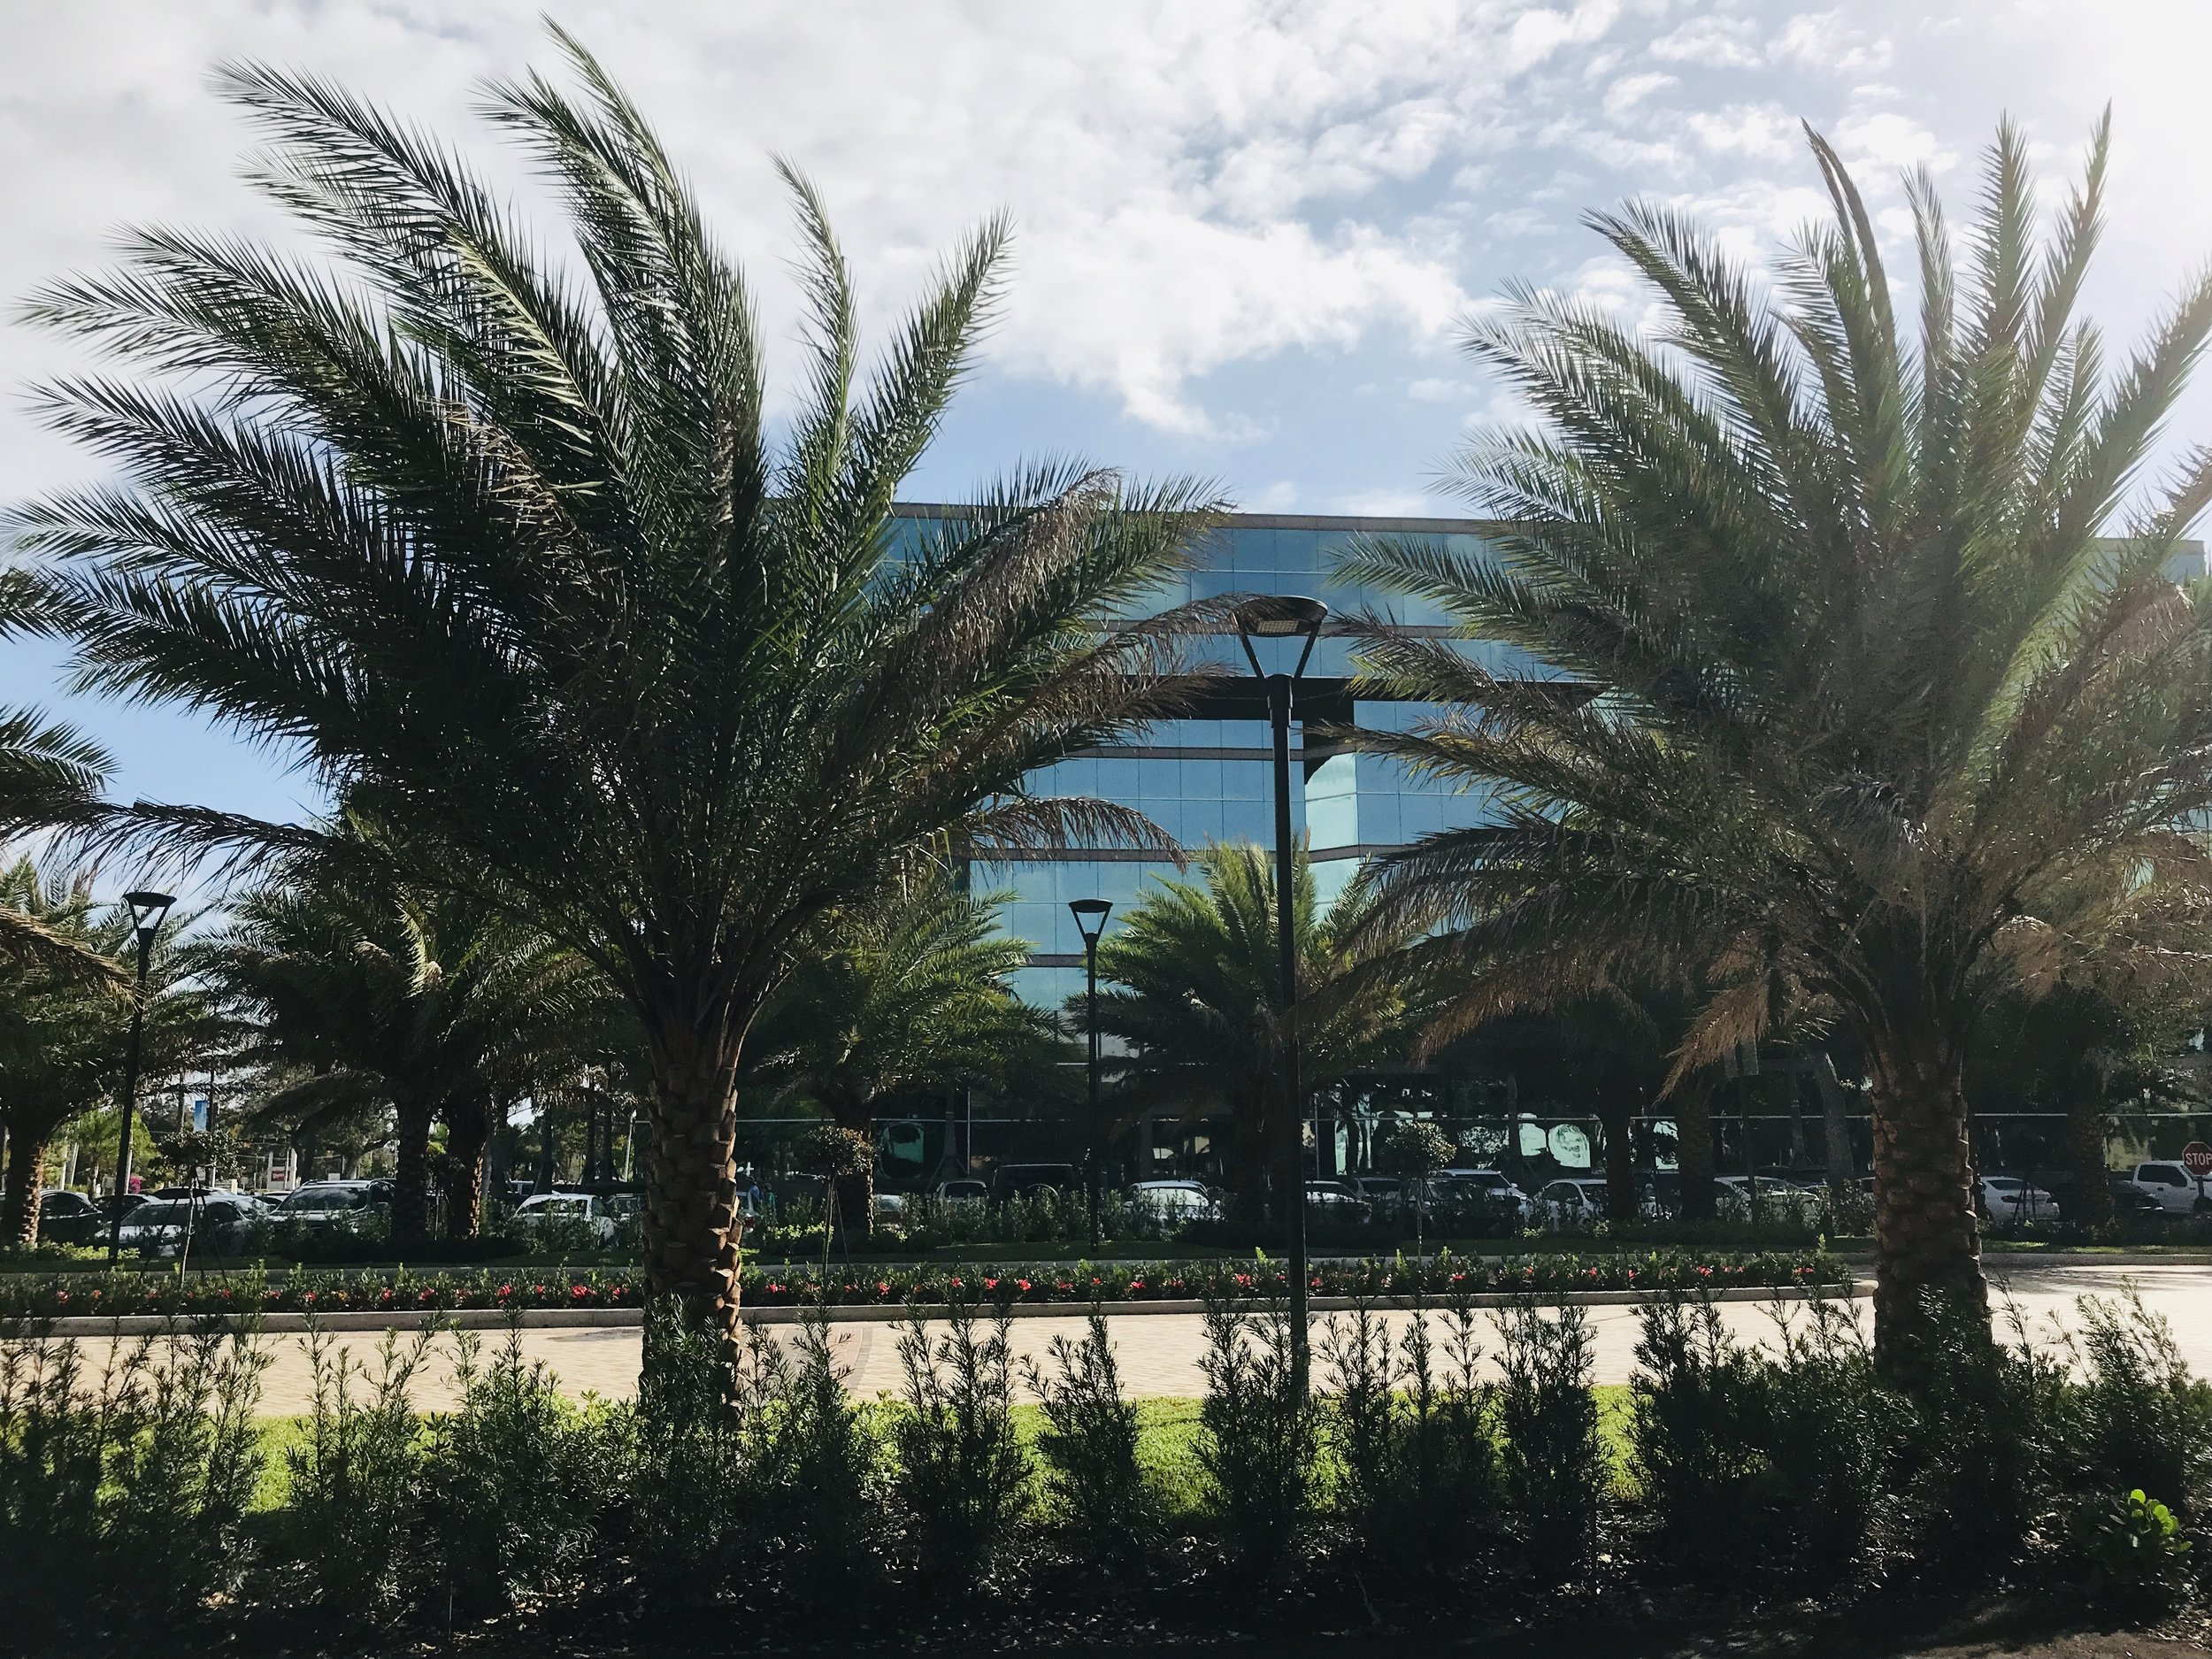 RKB Architects specified the Constitution post-top from LSI industries along with V2 tree spot from Garden Light LED, for this entrance at the Hillsboro Center in Deerfield Beach.